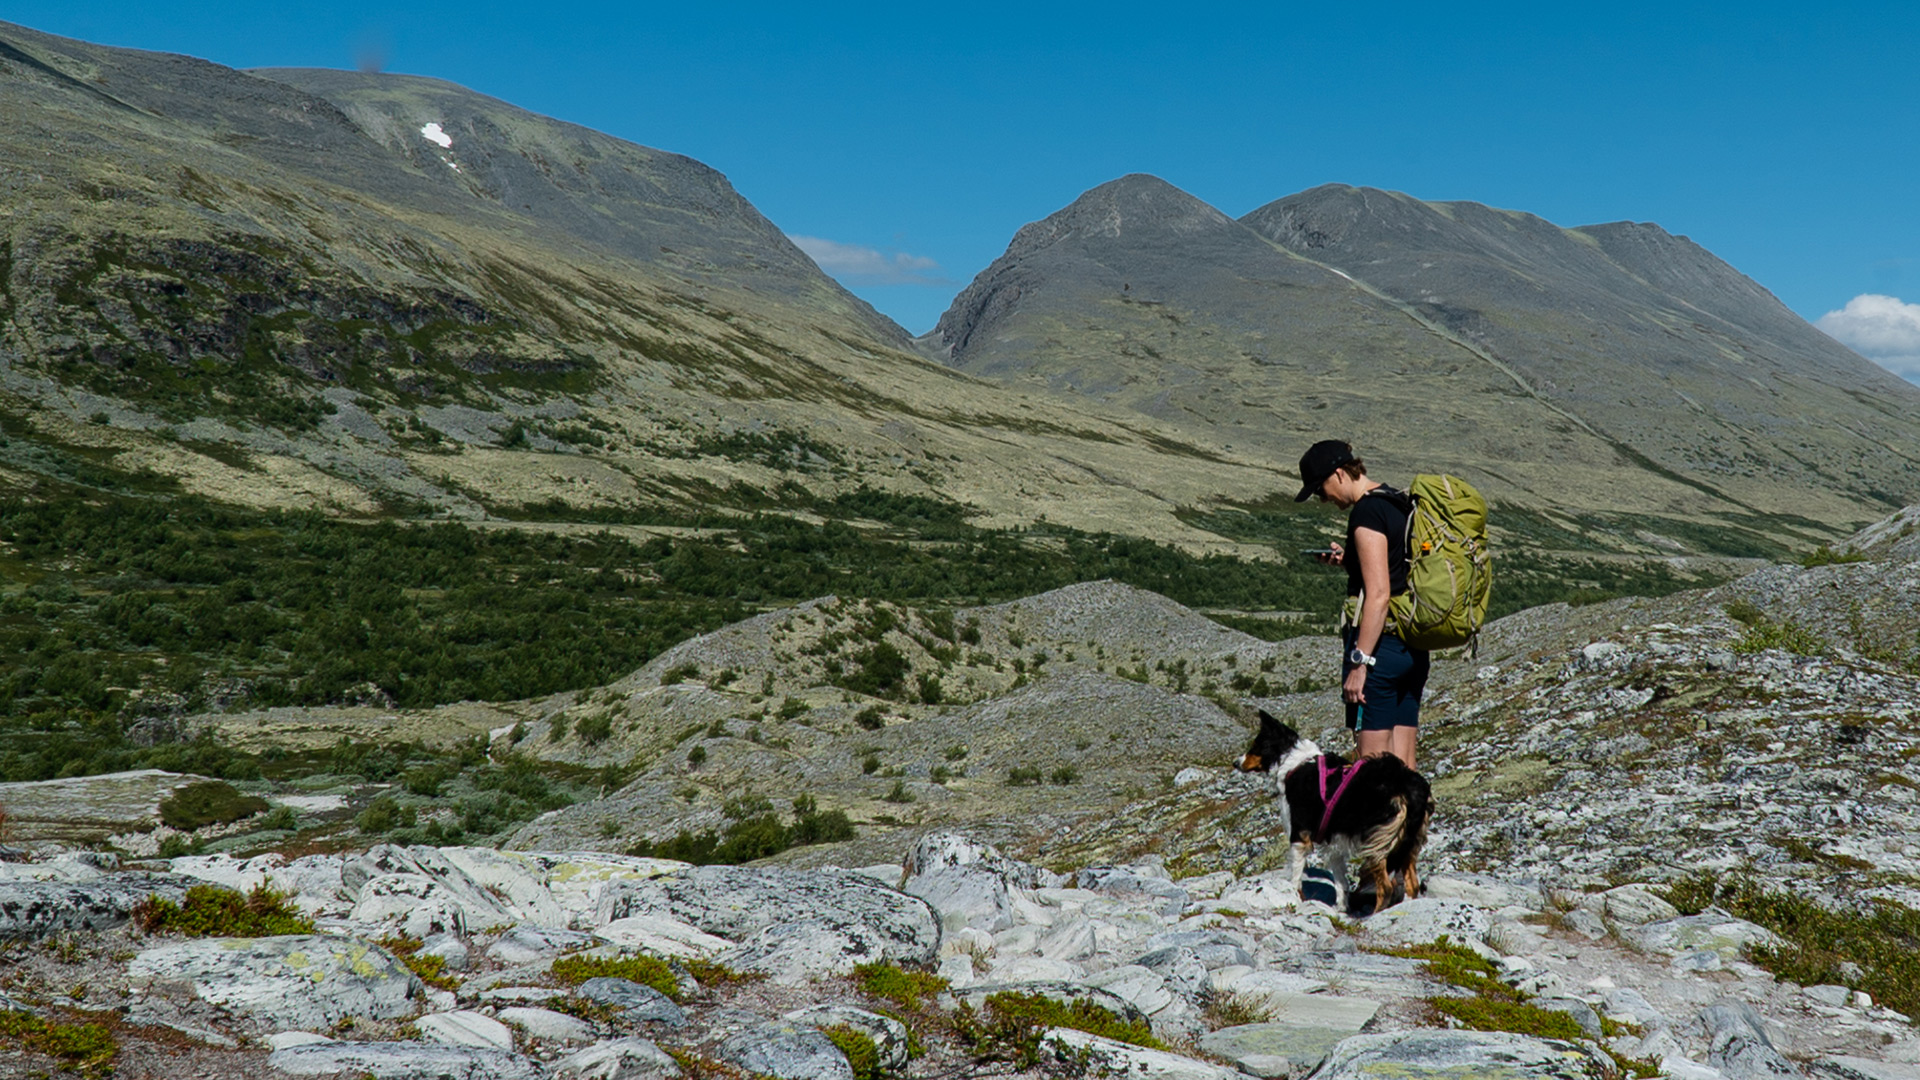 Person and dog hiking.